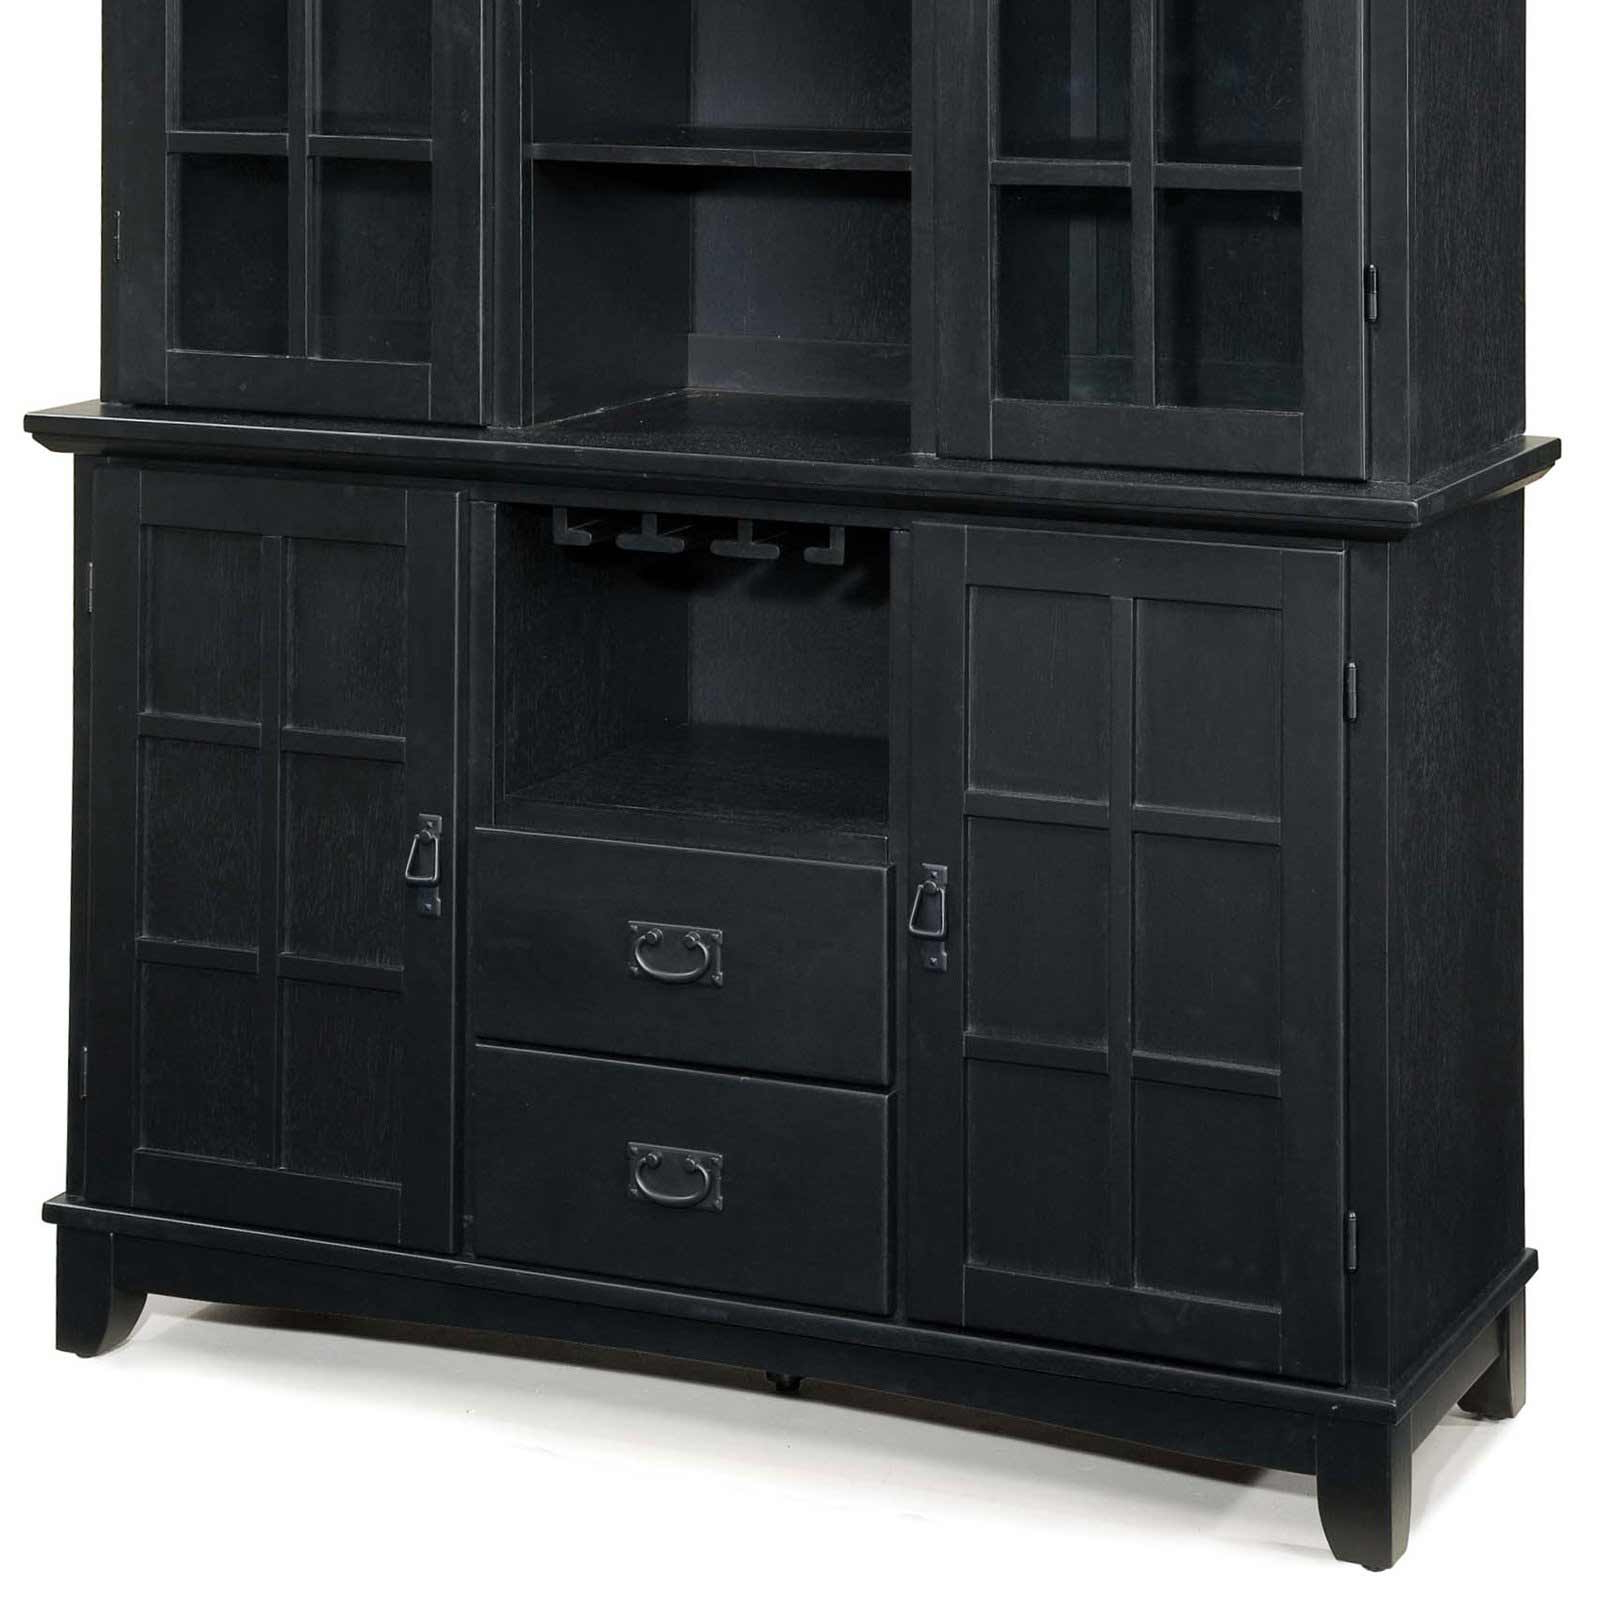 Home Styles Buffet To Beautify Kitchen Pacific Seafood Within Black Hutch Buffets With Stainless Top (View 13 of 20)